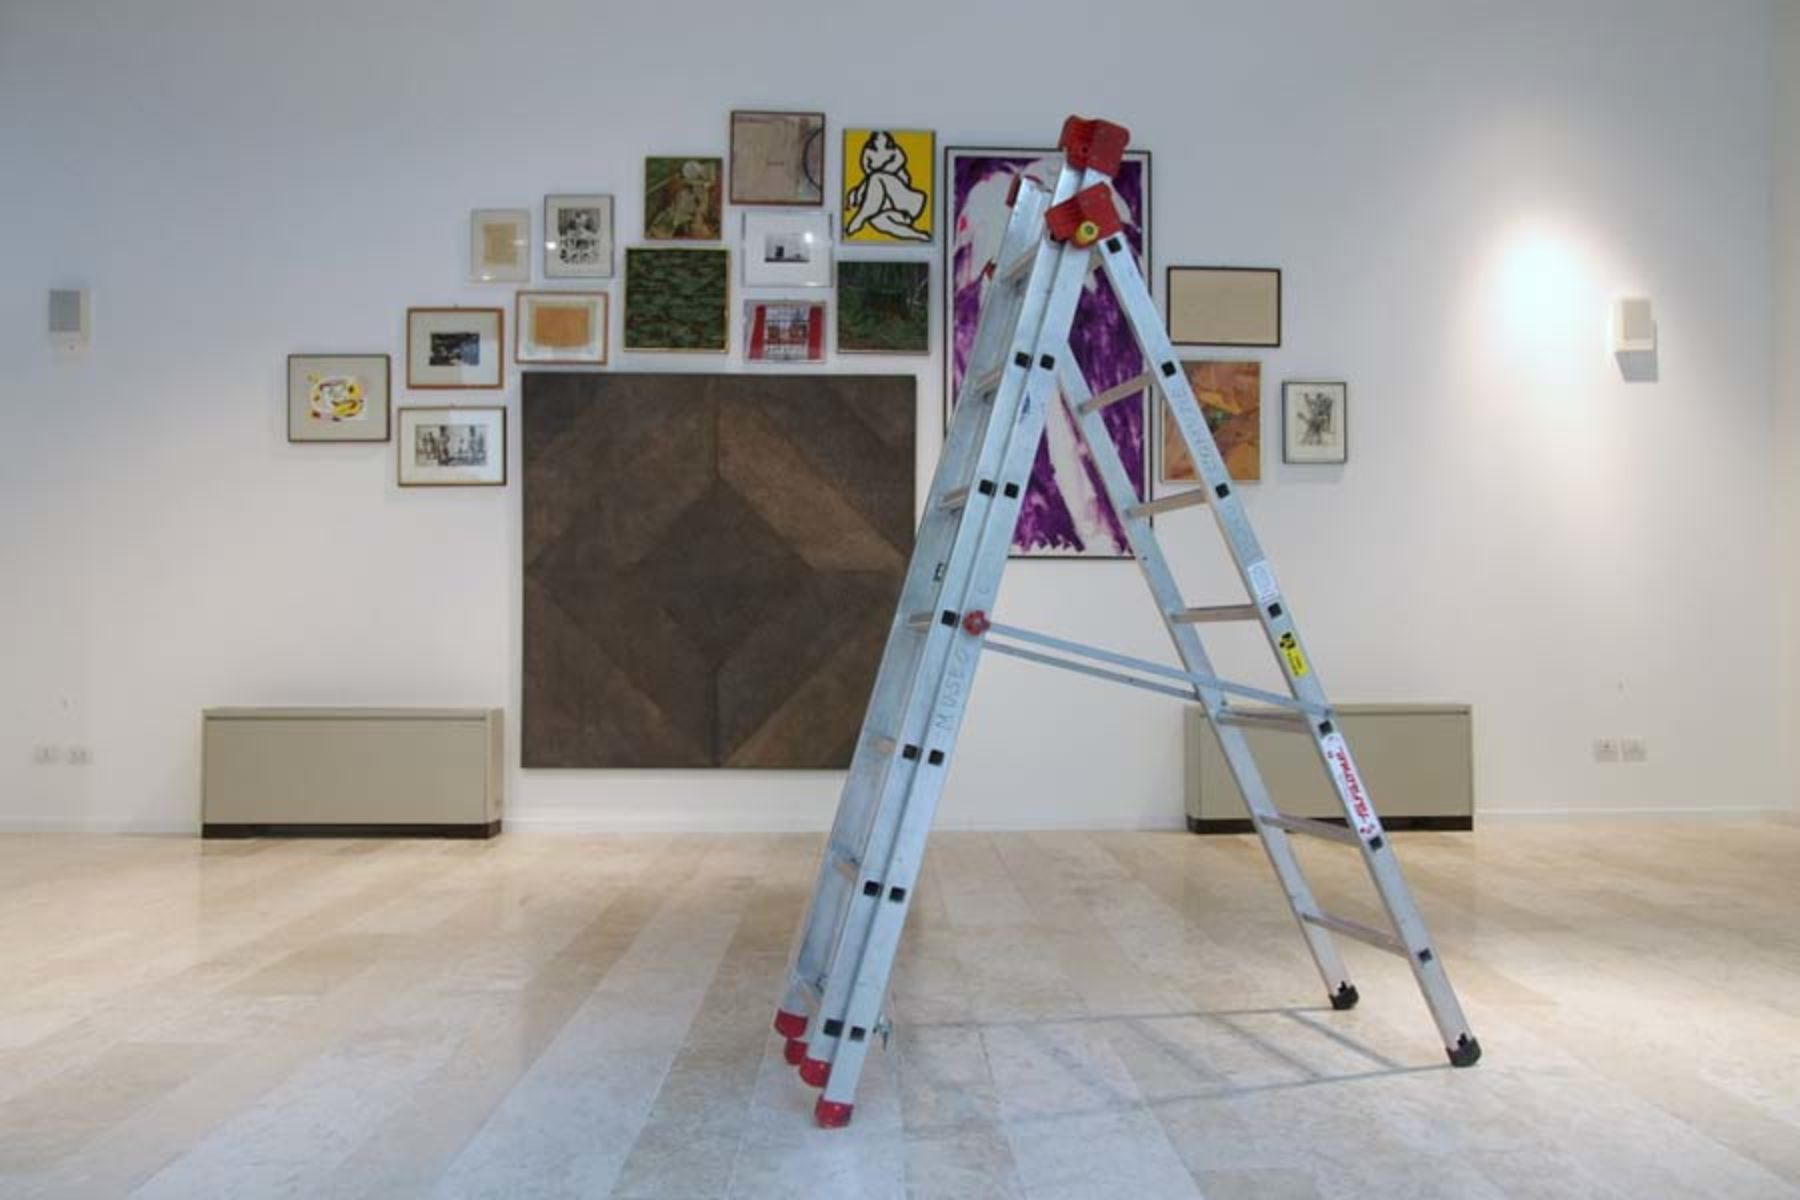 I. Moudov, 19 Problems, 18 Paintings, 2013, performance and site specific installation, 2